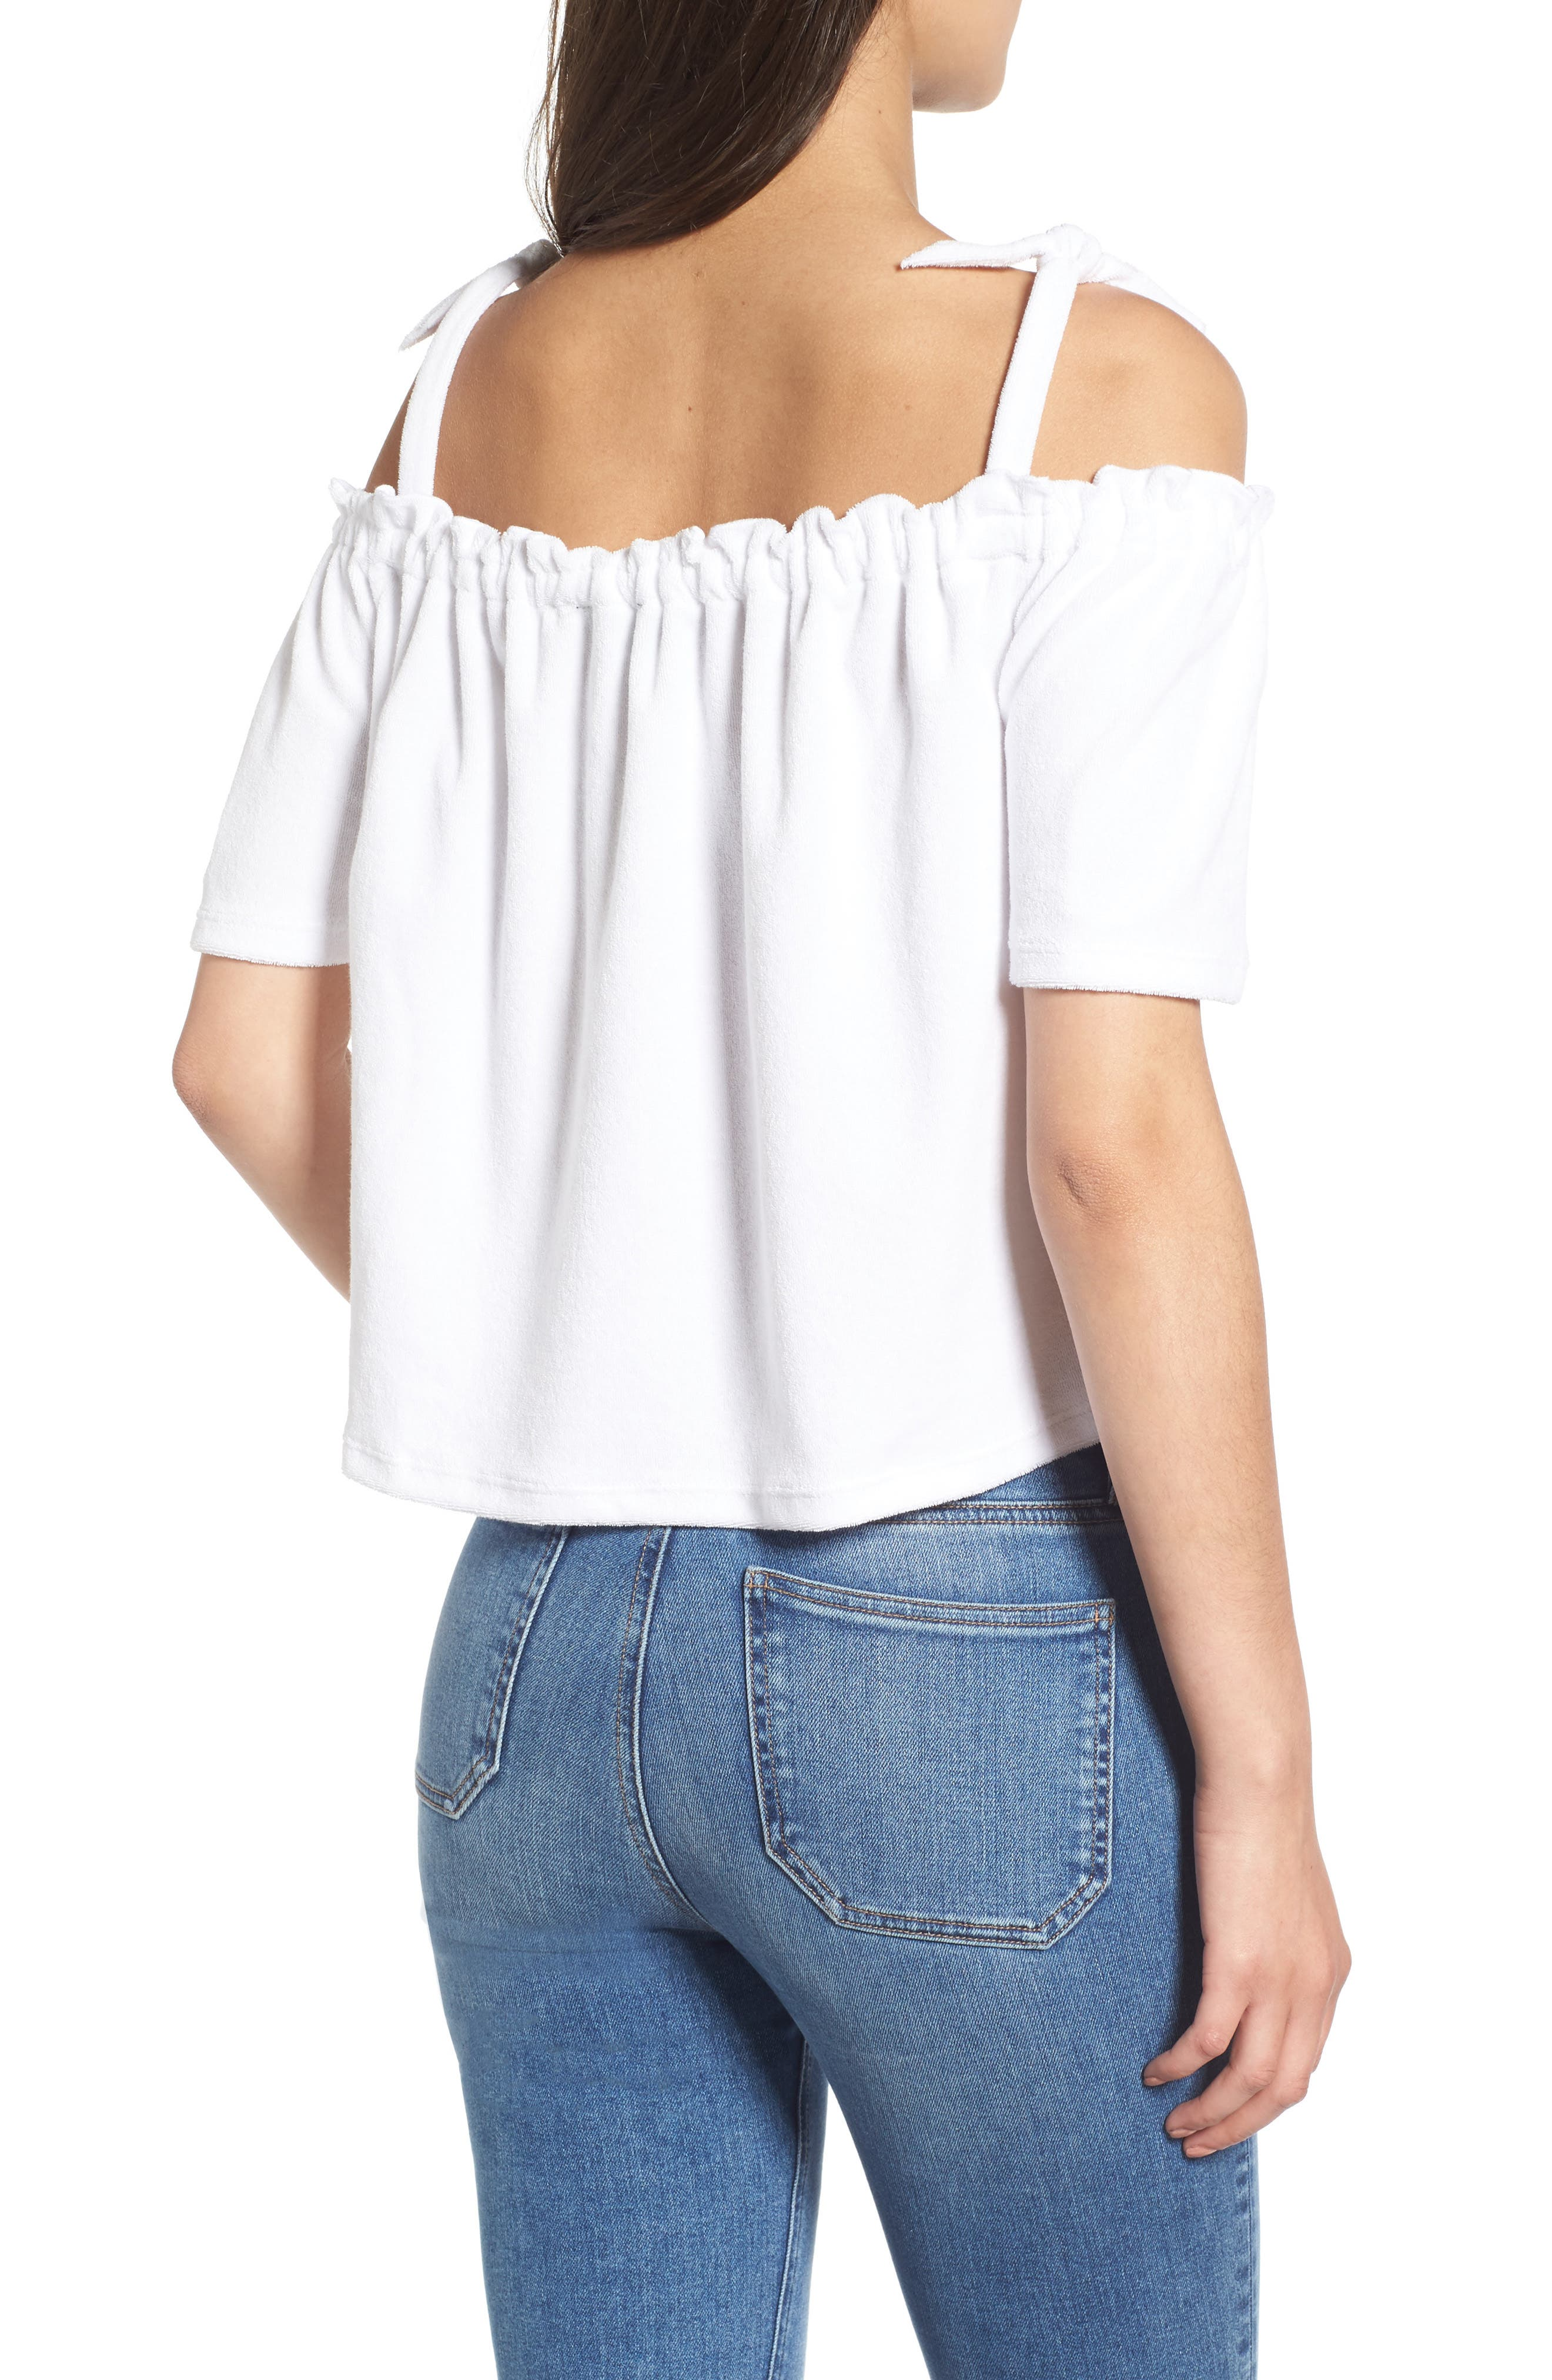 Venice Beach Microterry Off the Shoulder Top,                             Alternate thumbnail 2, color,                             119